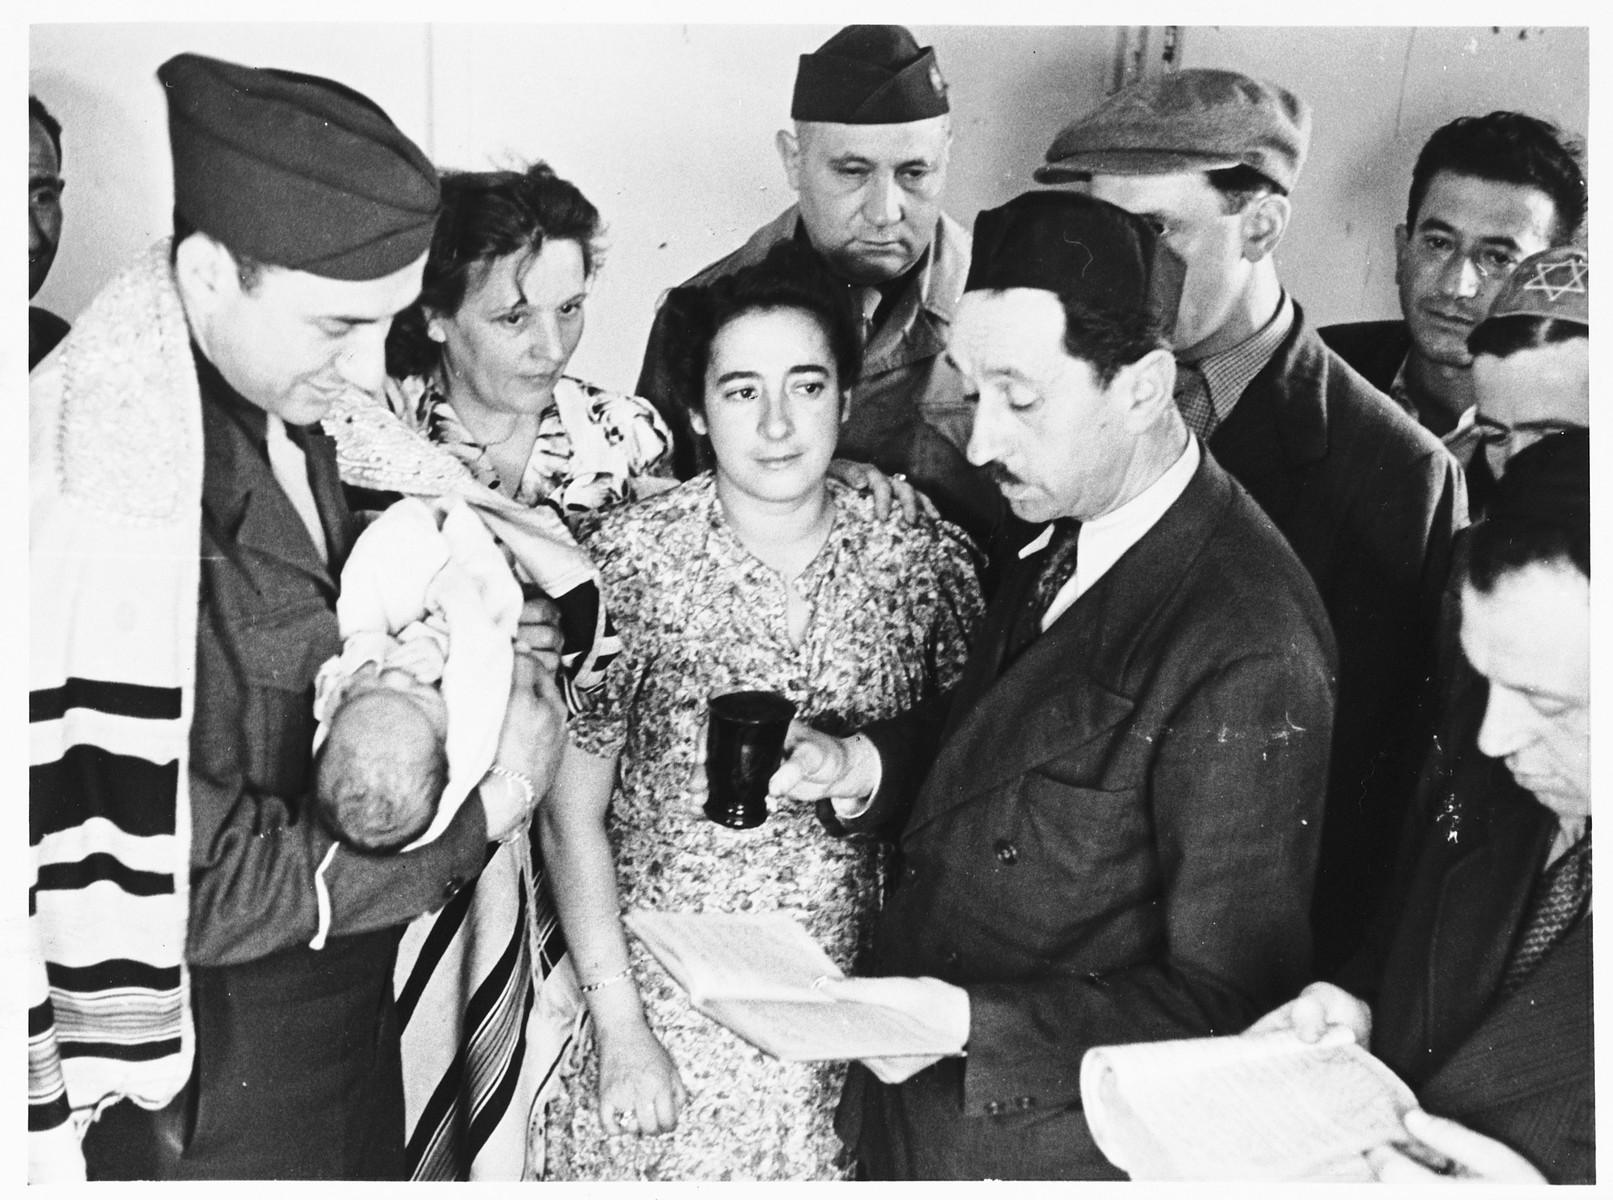 A blessing is recited during a circumcision ceremony in the Schlachtensee displaced persons camp.  Among those pictured is UNRRA camp director Harold Fishbein (center, back).